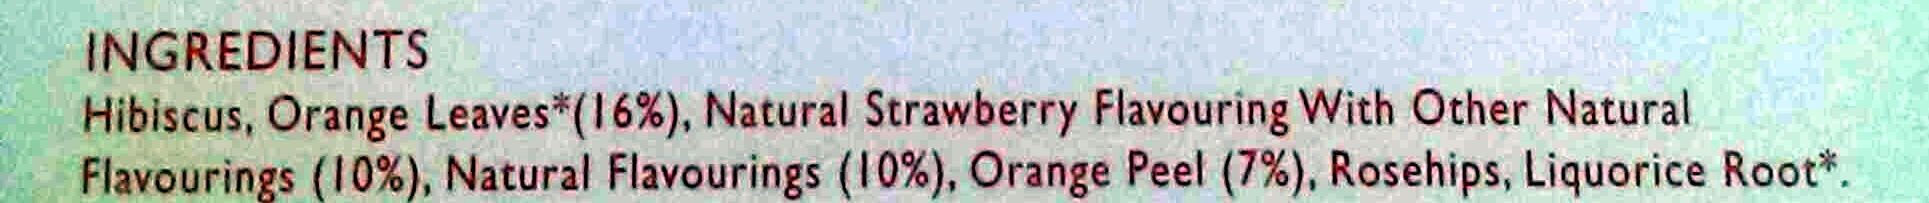 Mango & Strawberry tea - Ingredients